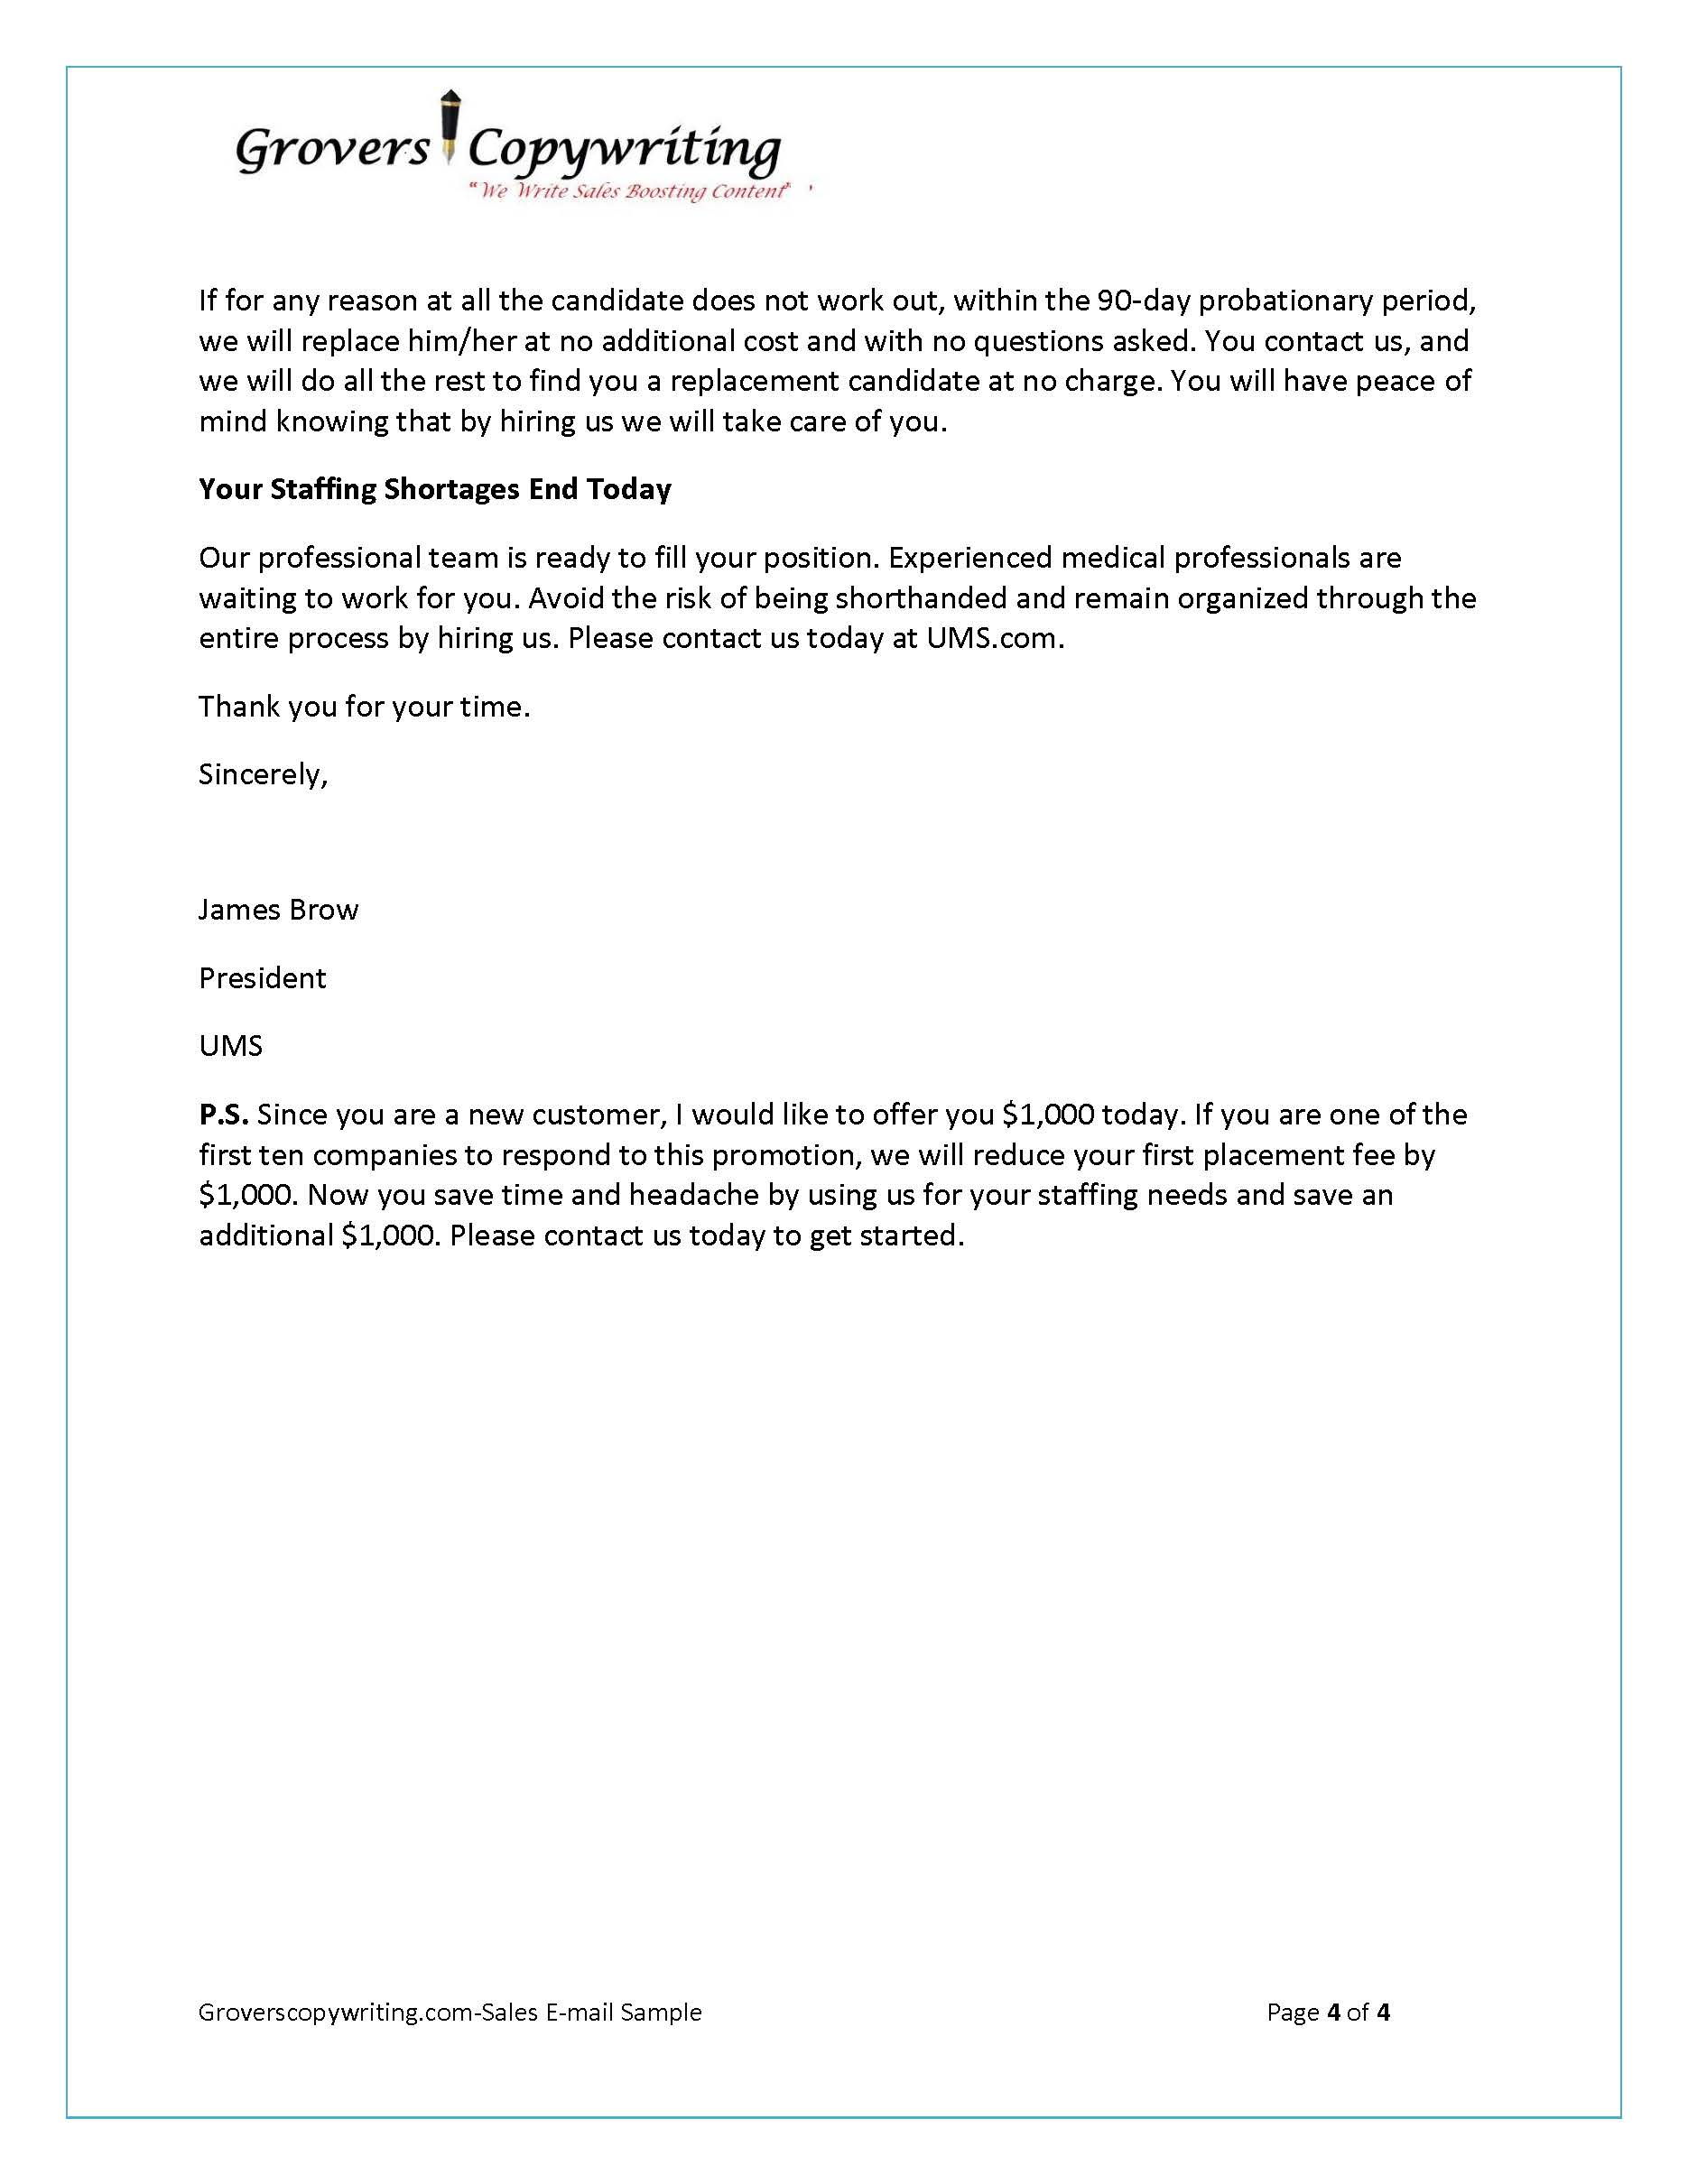 E-Mail Sales Letter - Medical Staffing_Page_4